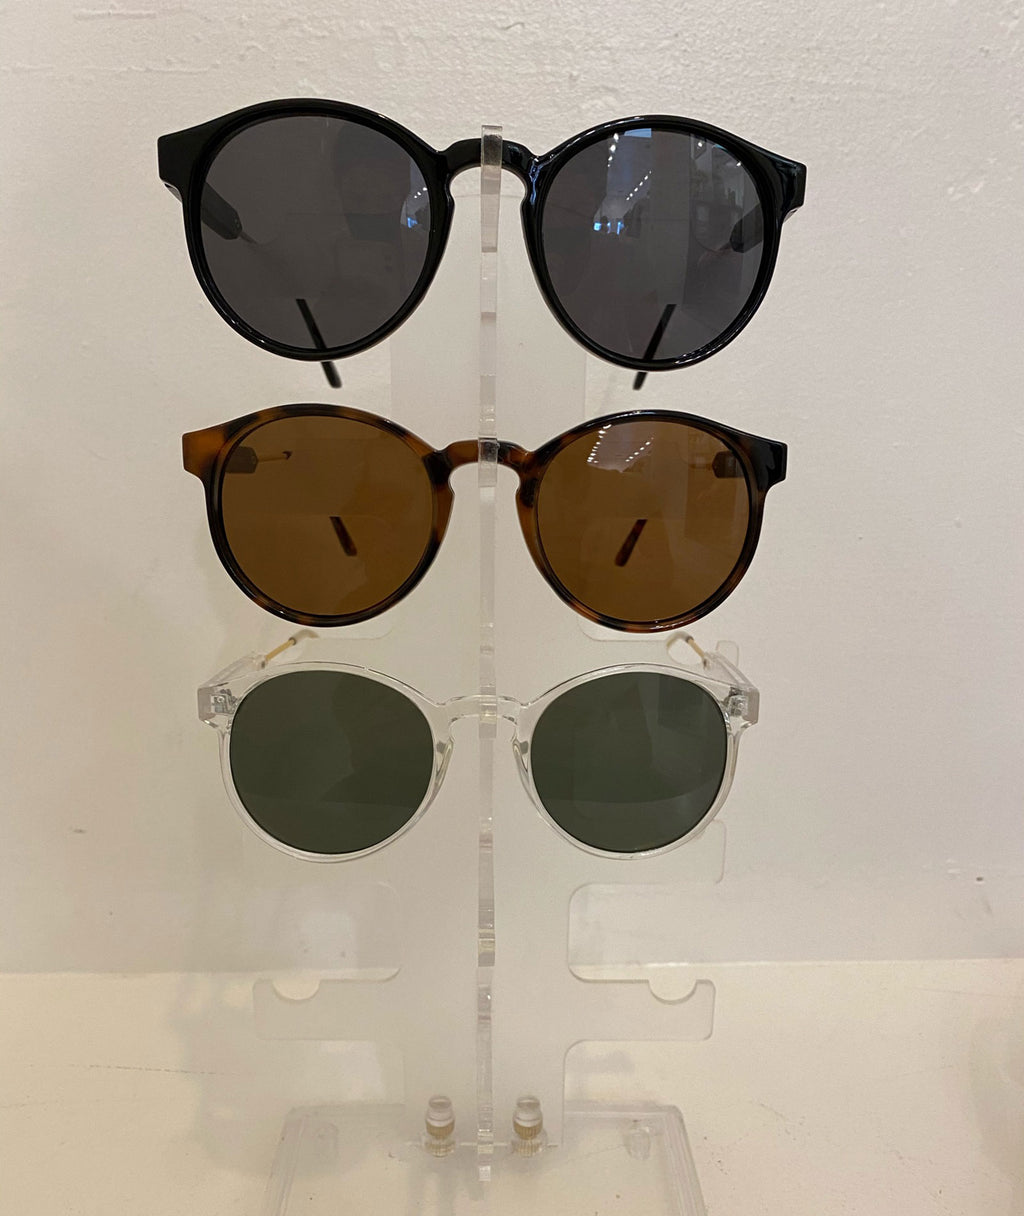 Fashionista J Aviator Round Retro Sunglasses